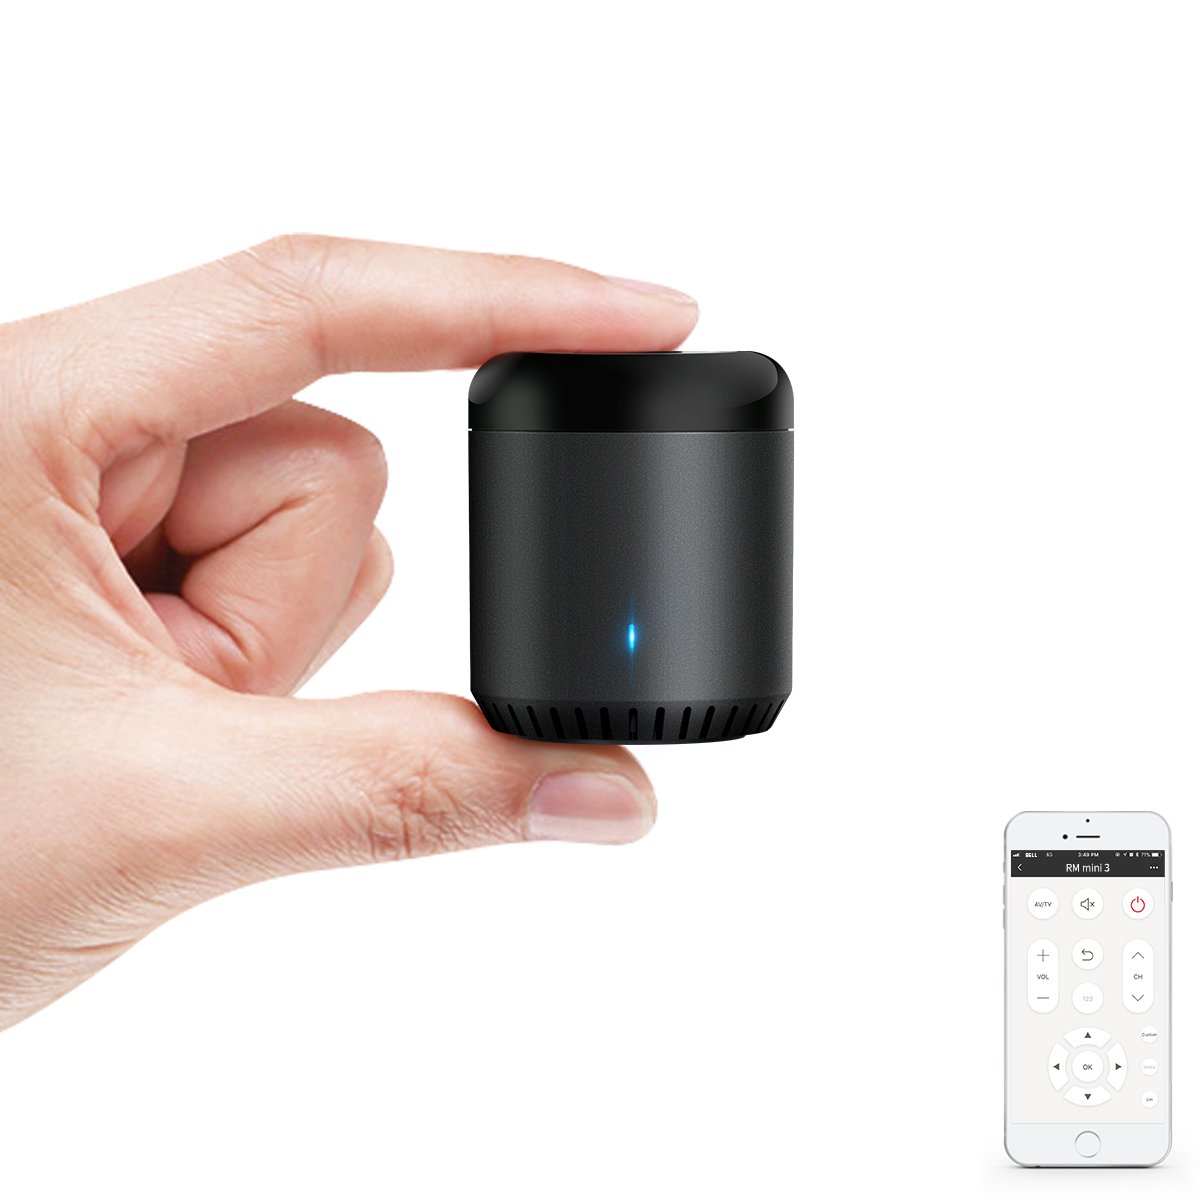 BroadLink IR Control Hub Works with Amazon Alexa, RM Mini3 Smart Home Wi-Fi Enabled Infrared Universal Remote Control, One for All Control ( Black Bean RMMINI3-EN )